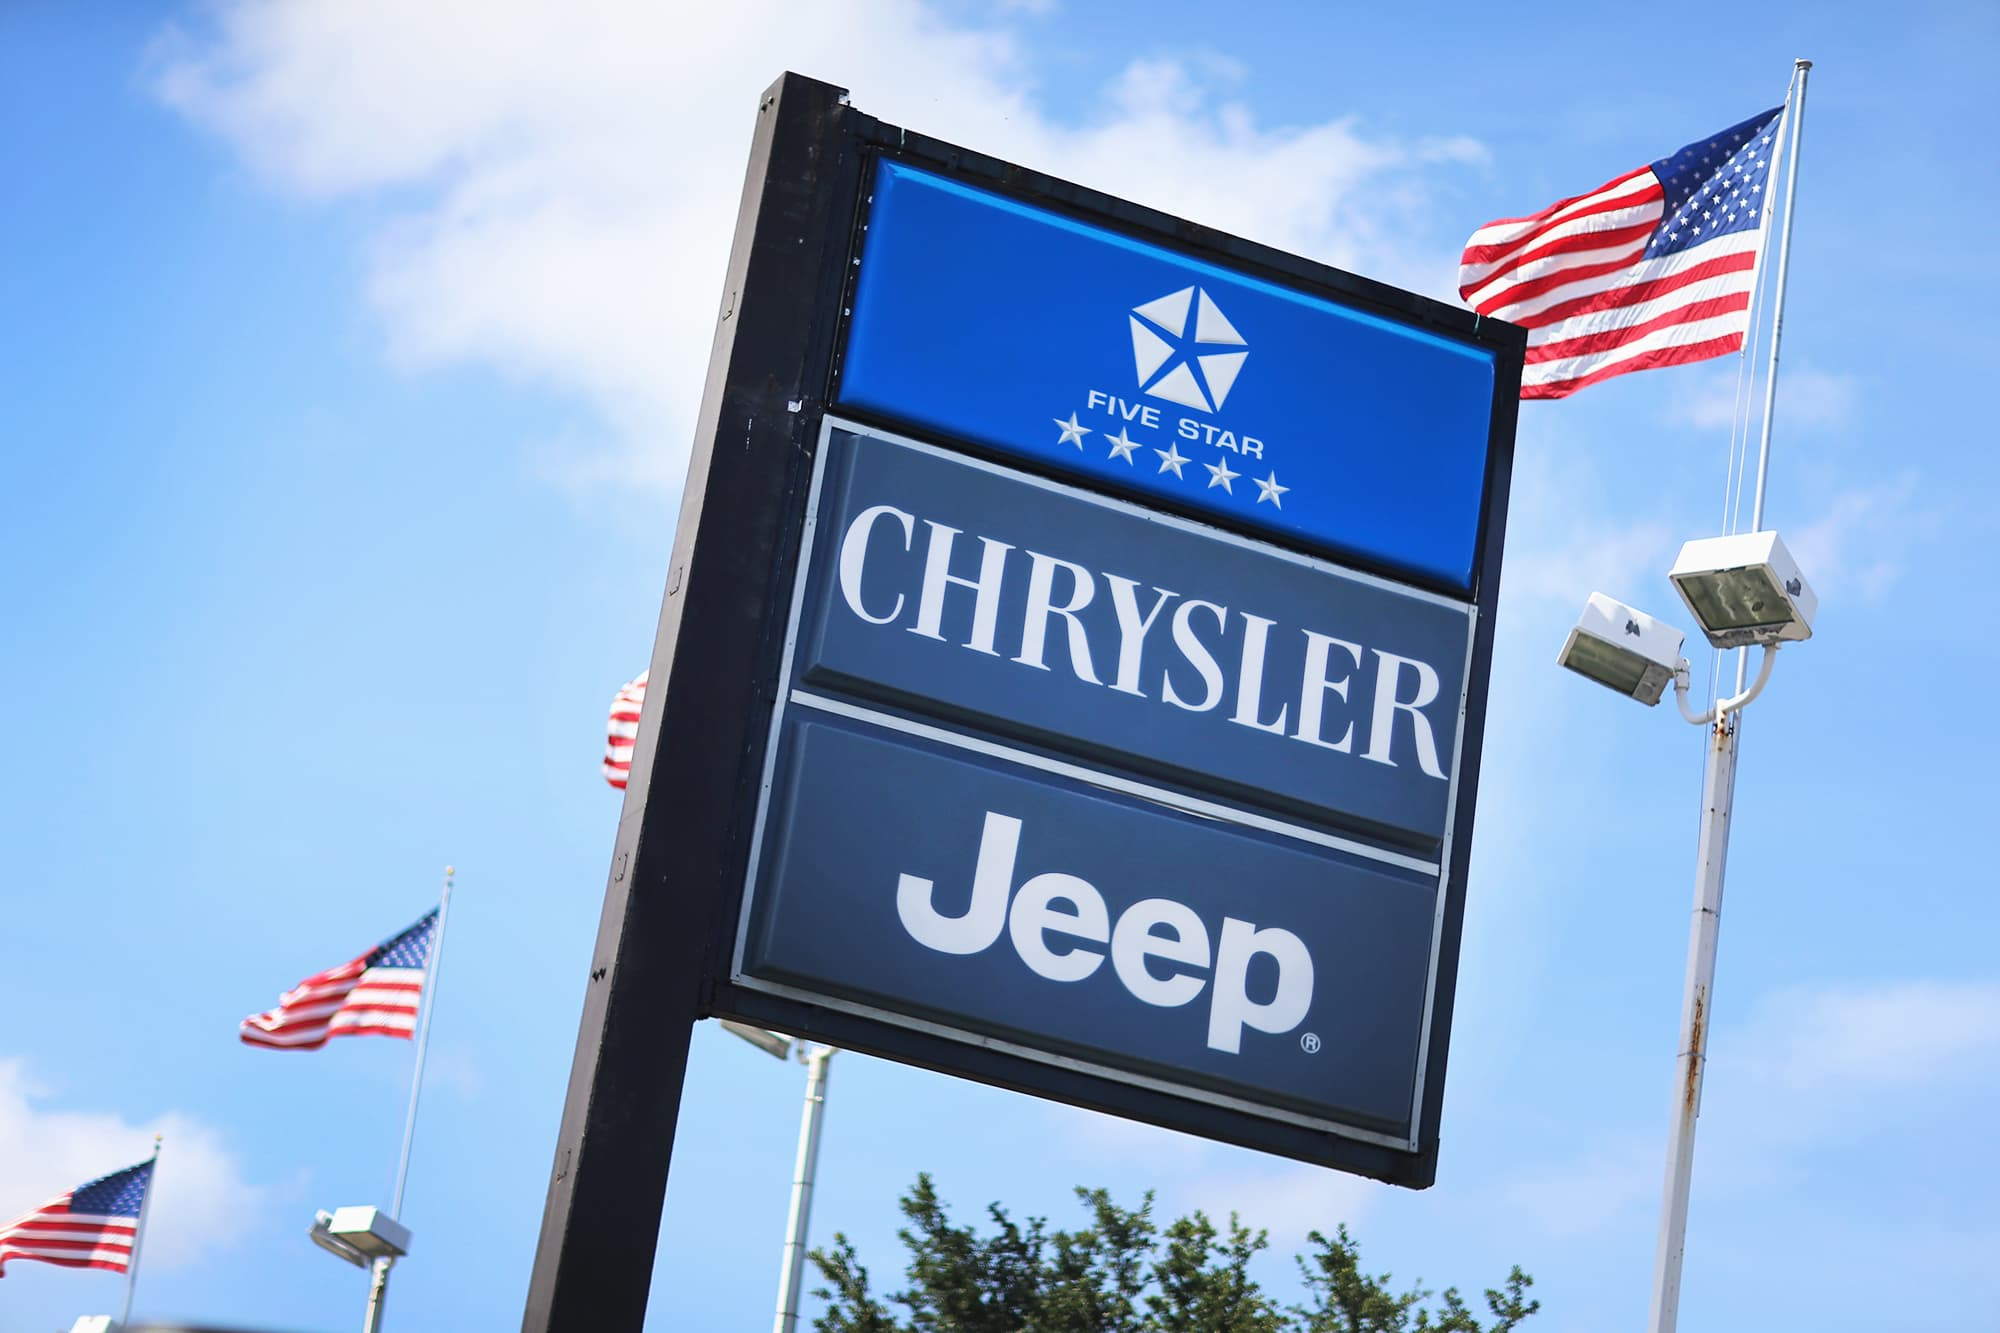 Chrysler ipo what investors need to know biocorpaavc Choice Image